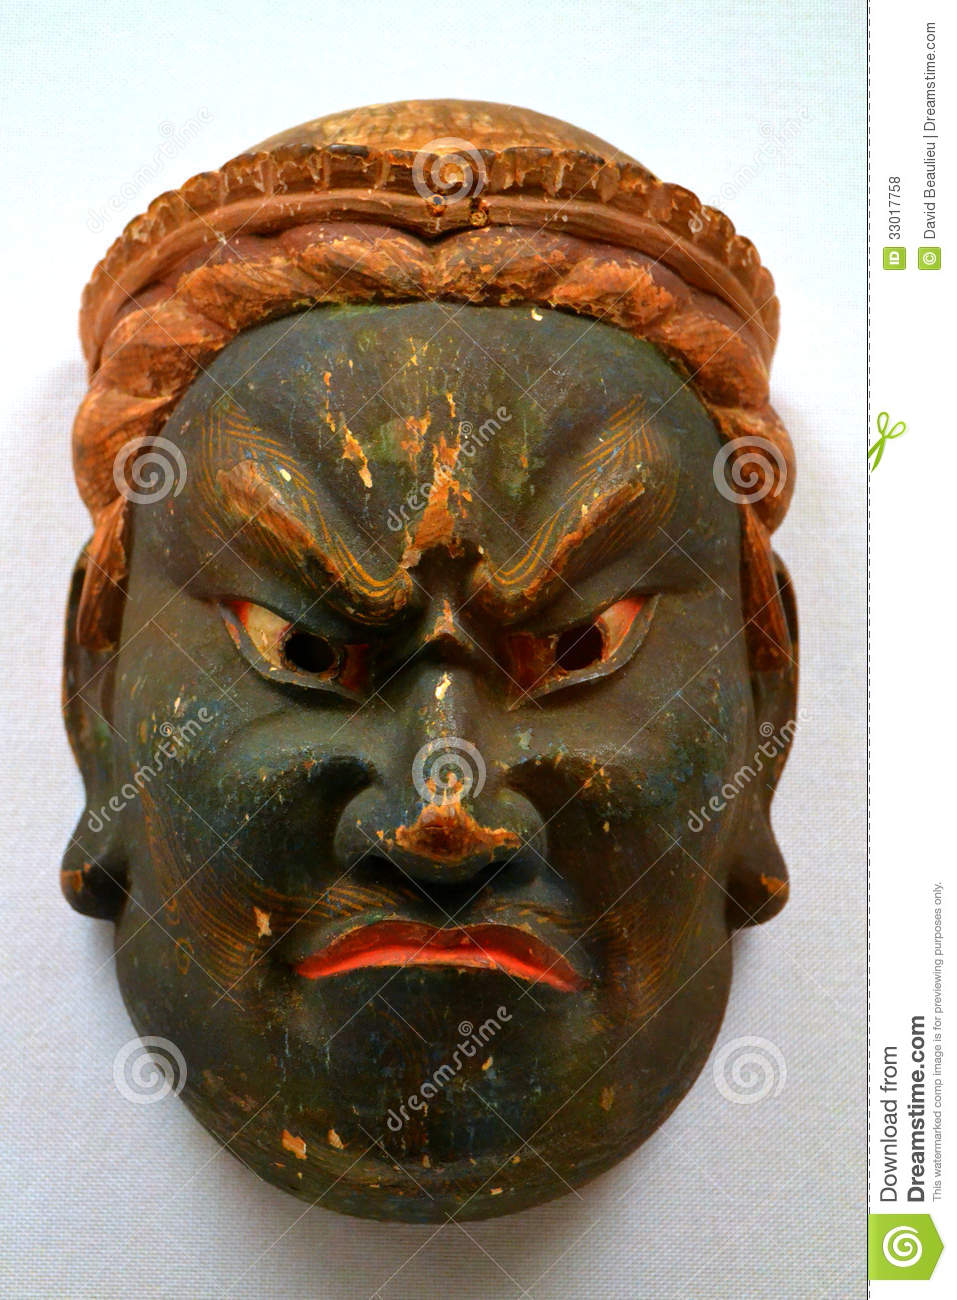 Angry mask stock photo. Image of mask a98256144c2f